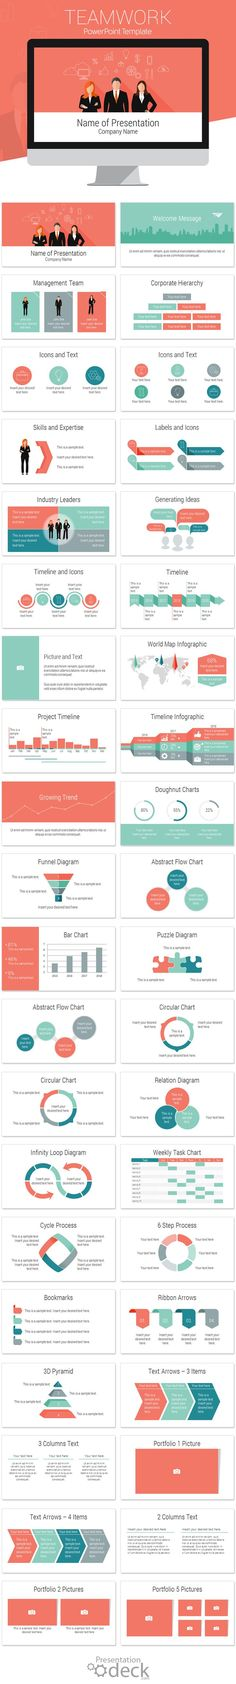 Business infographic : Teamwork PowerPoint Template  PresentationDeck.com